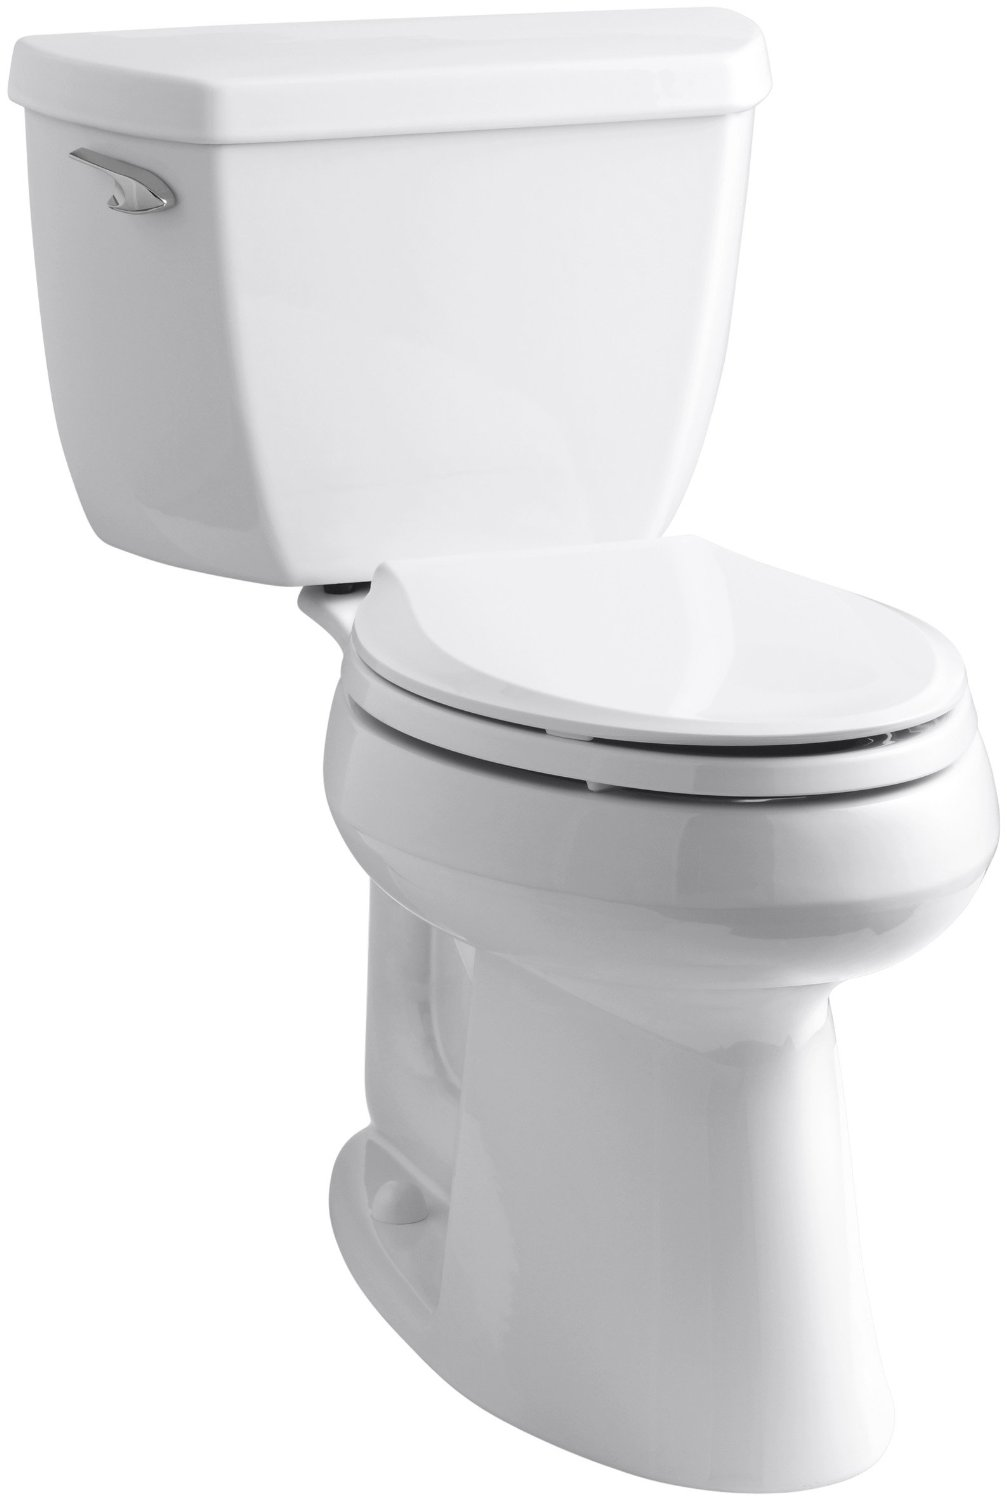 KOHLER Highline Classic Toilet Review